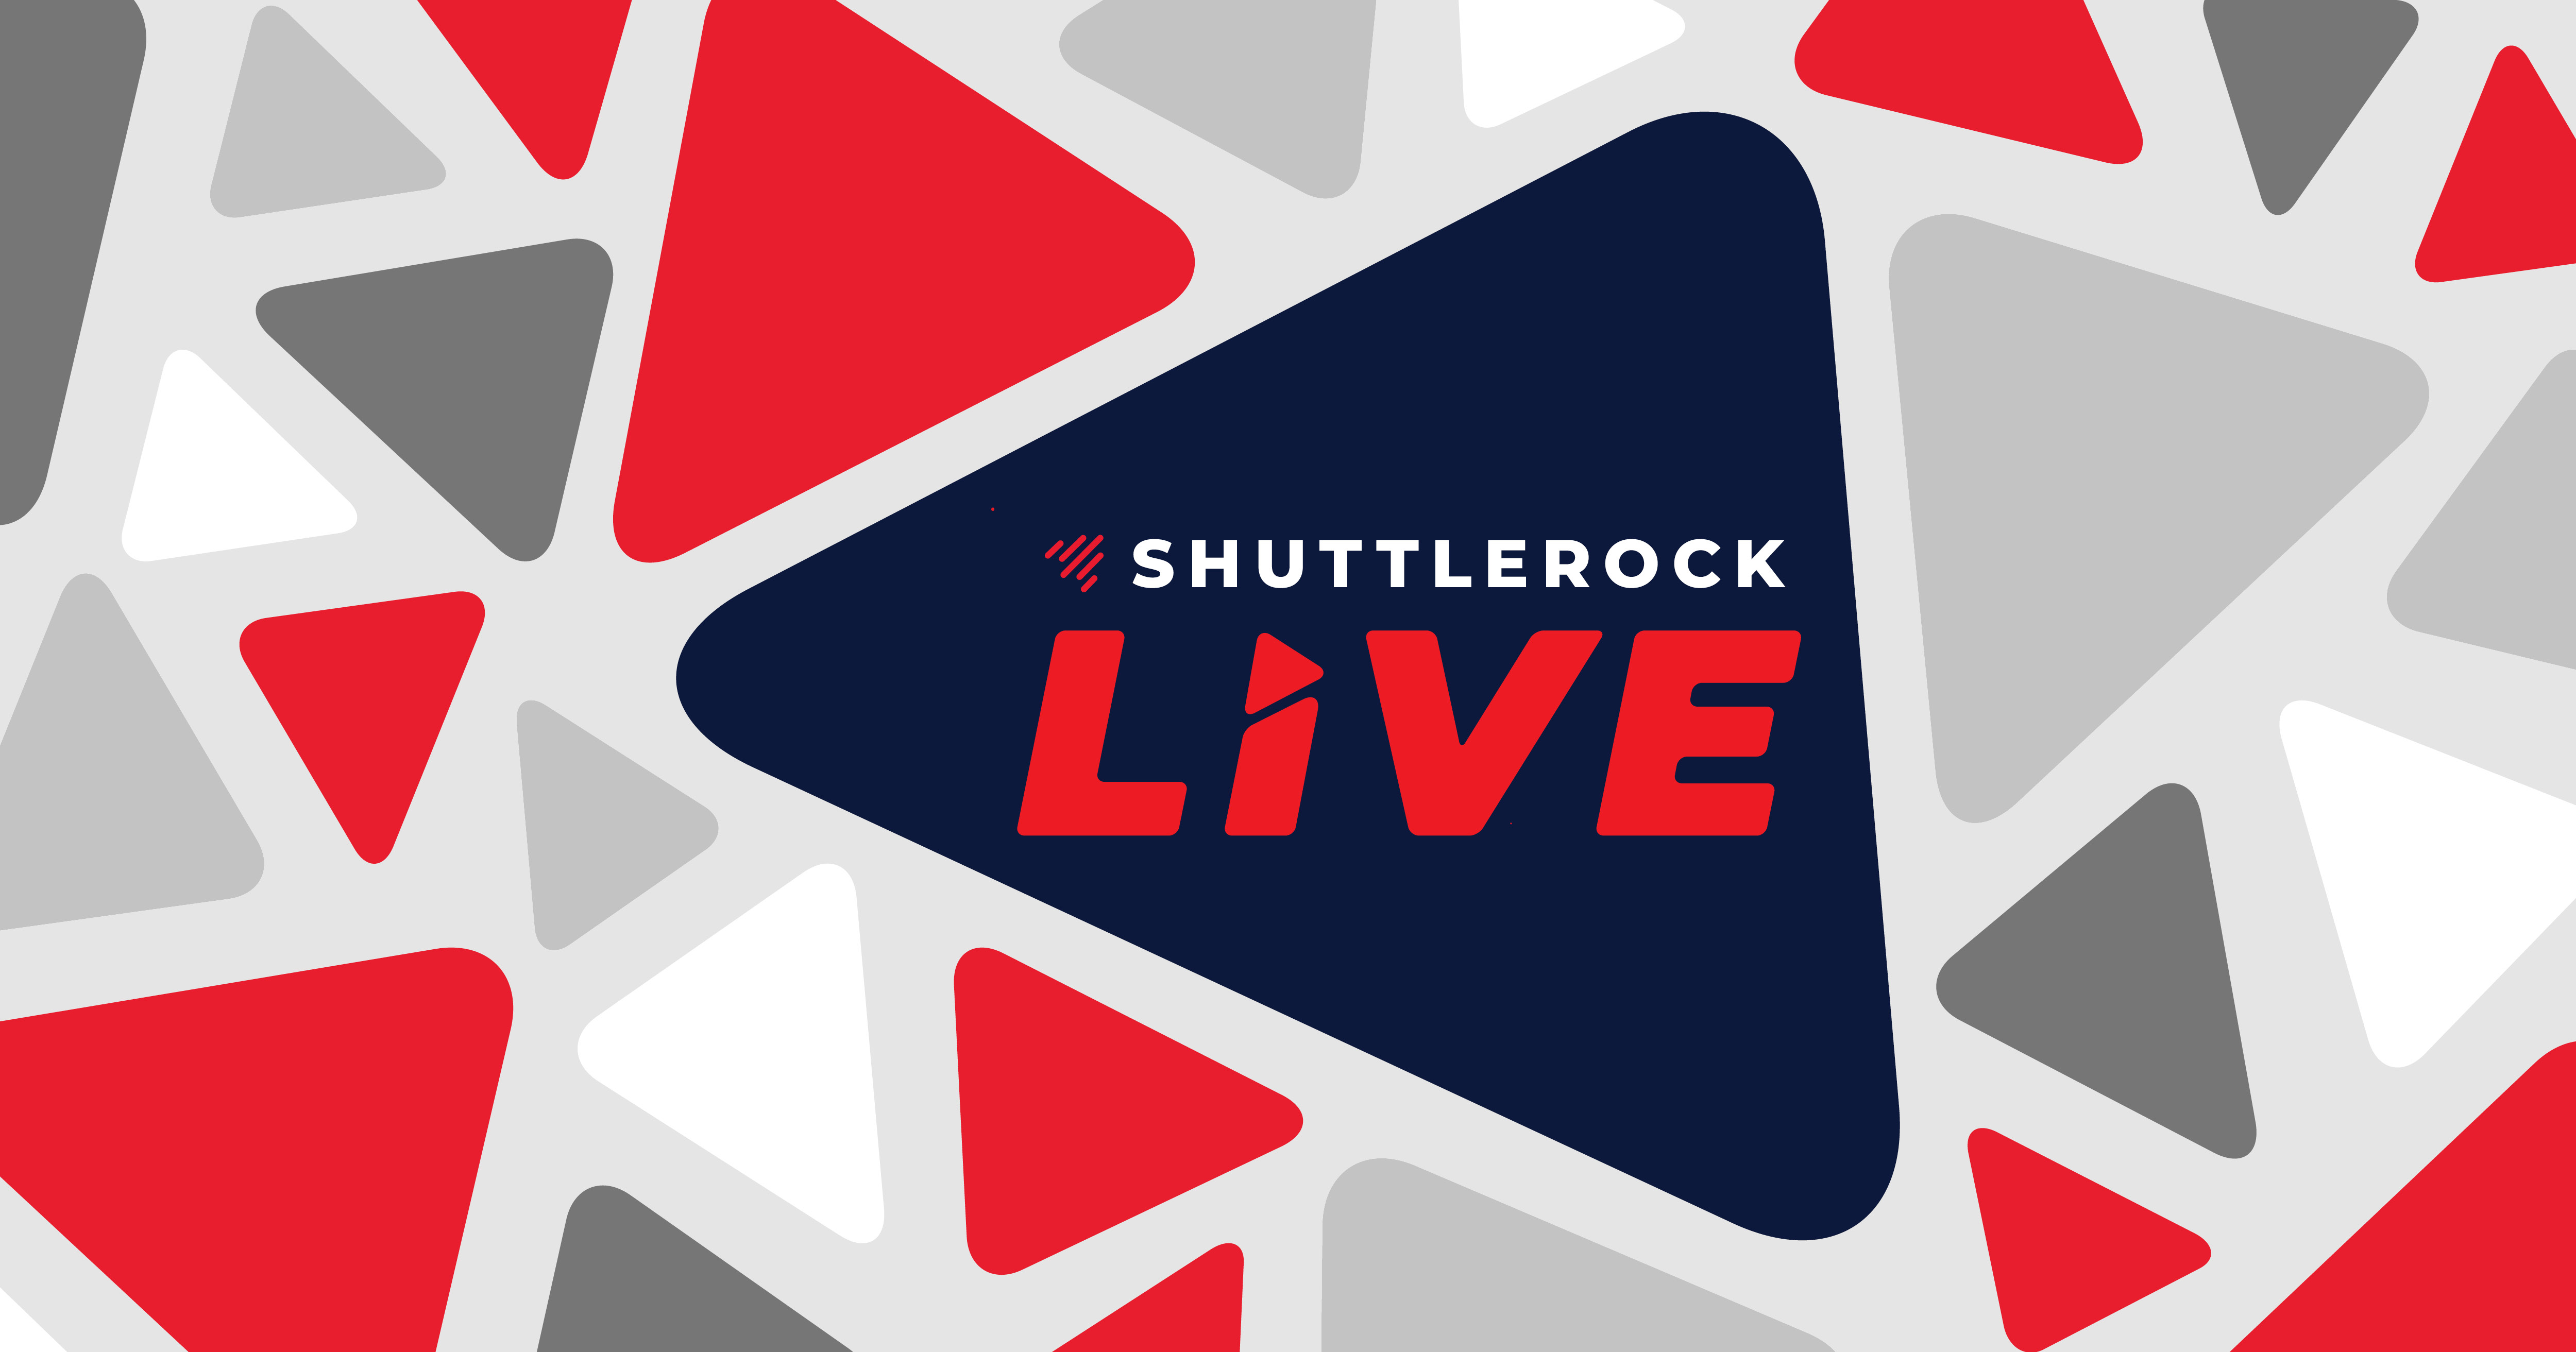 Shuttlerock LIVE: Fast-Tracking Creative With Virtual Workshops